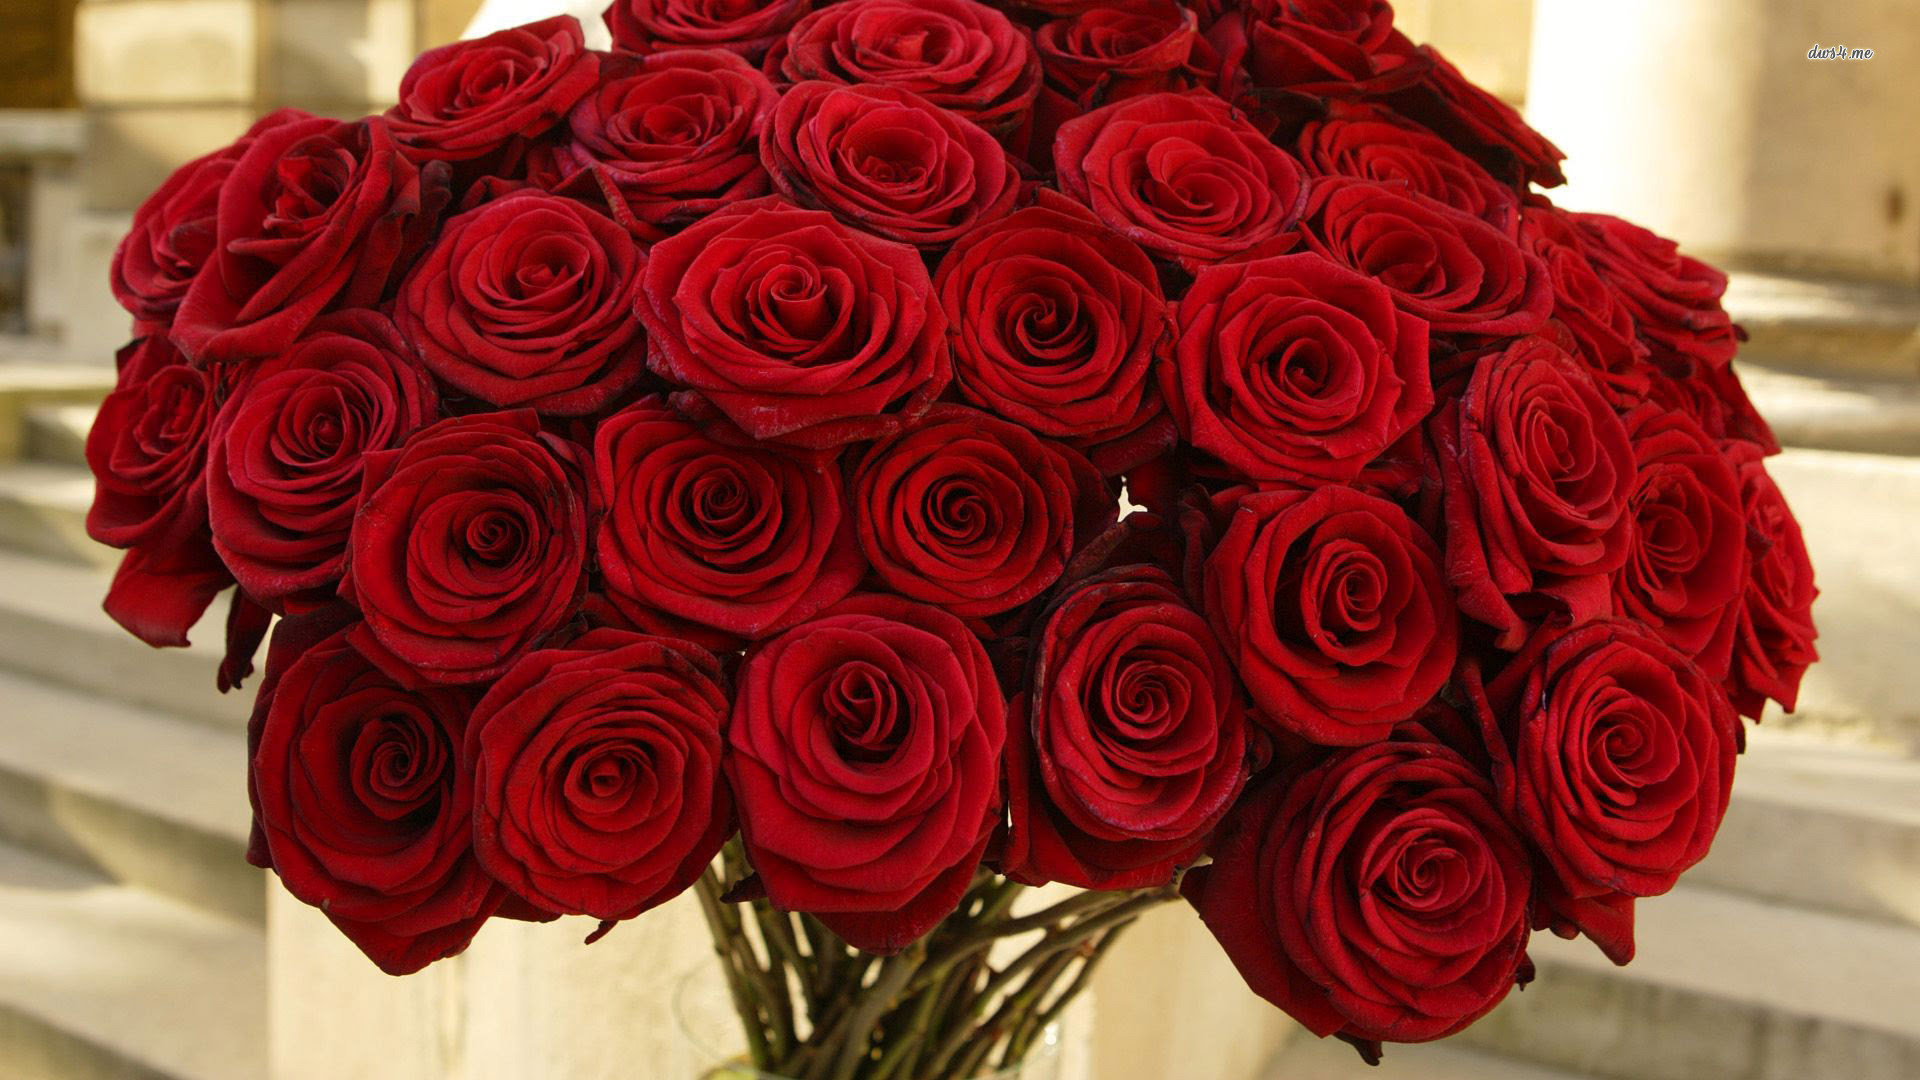 Red Roses Wallpapers For Desktop 50 Images